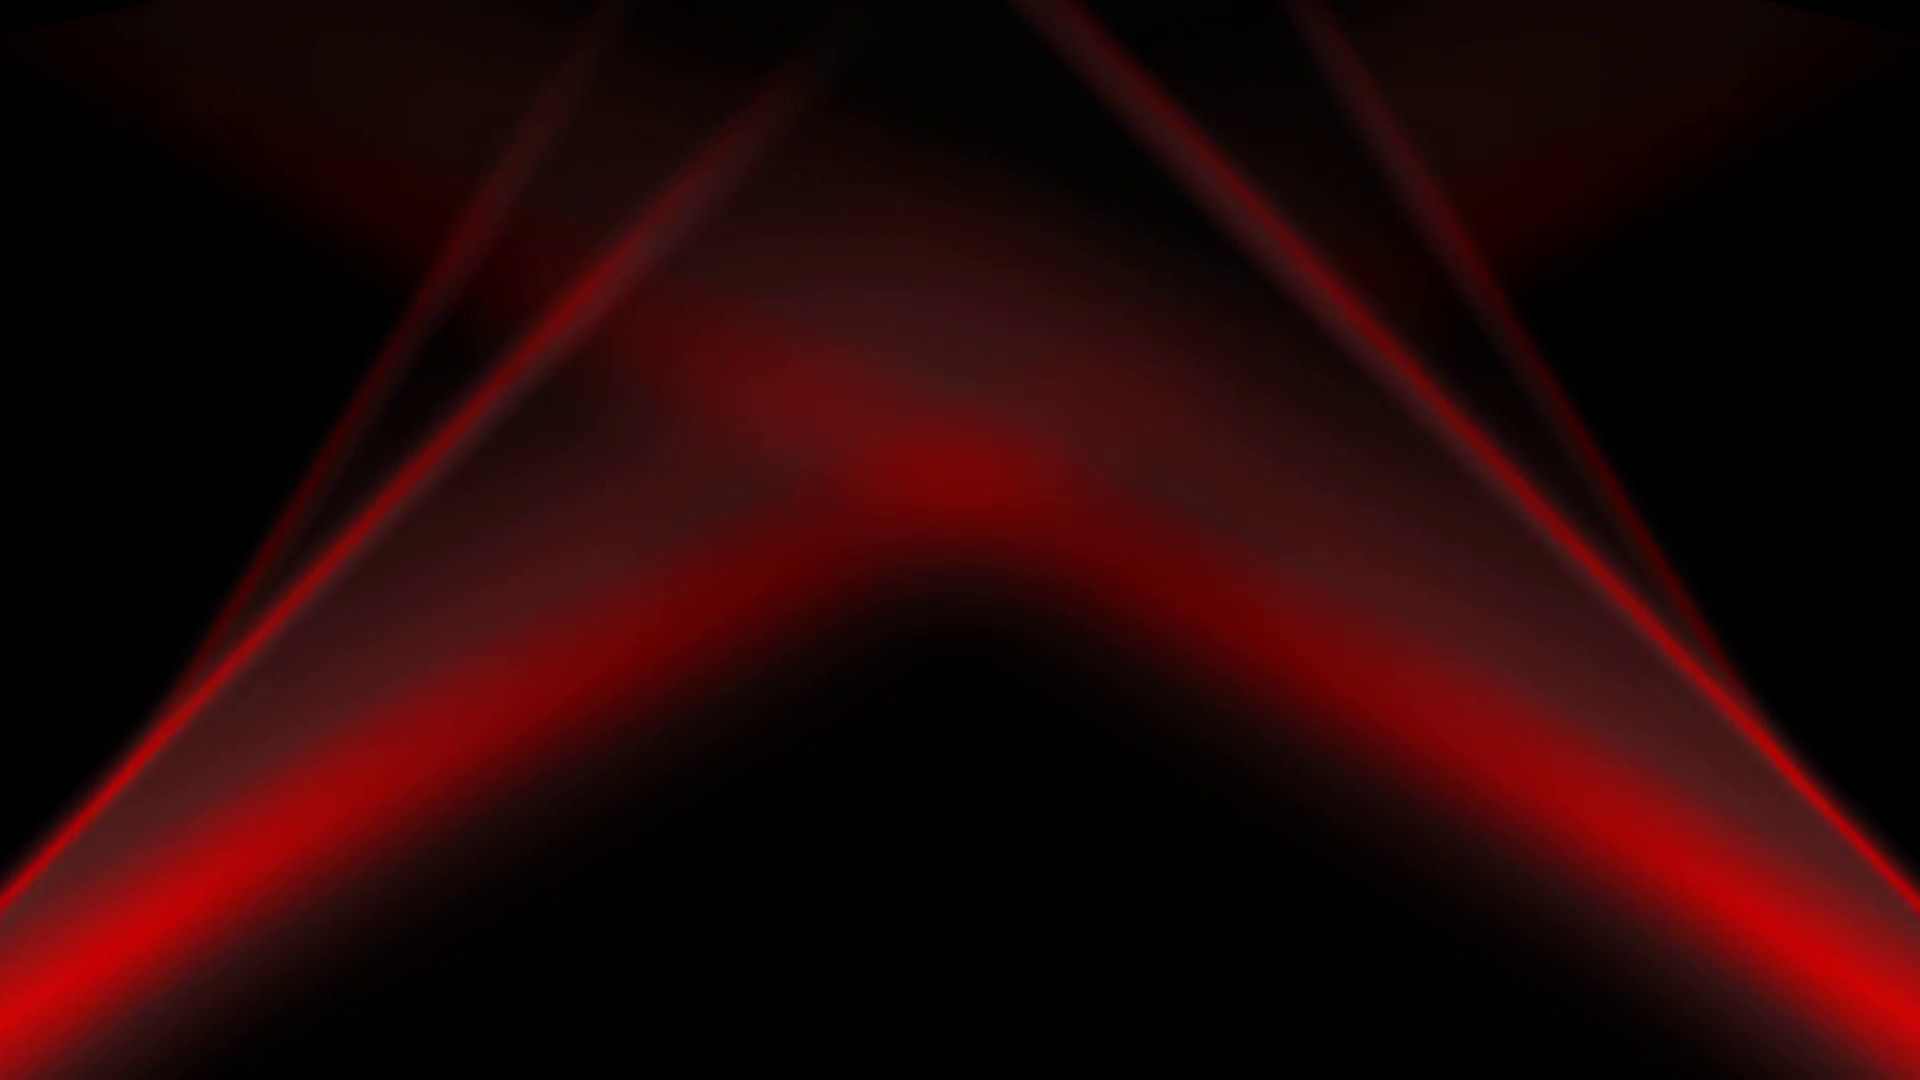 1920x1080 Abstract dark animated background. Glow red flowing wavy stripes on black.  Video graphic design HD  Motion Background - VideoBlocks